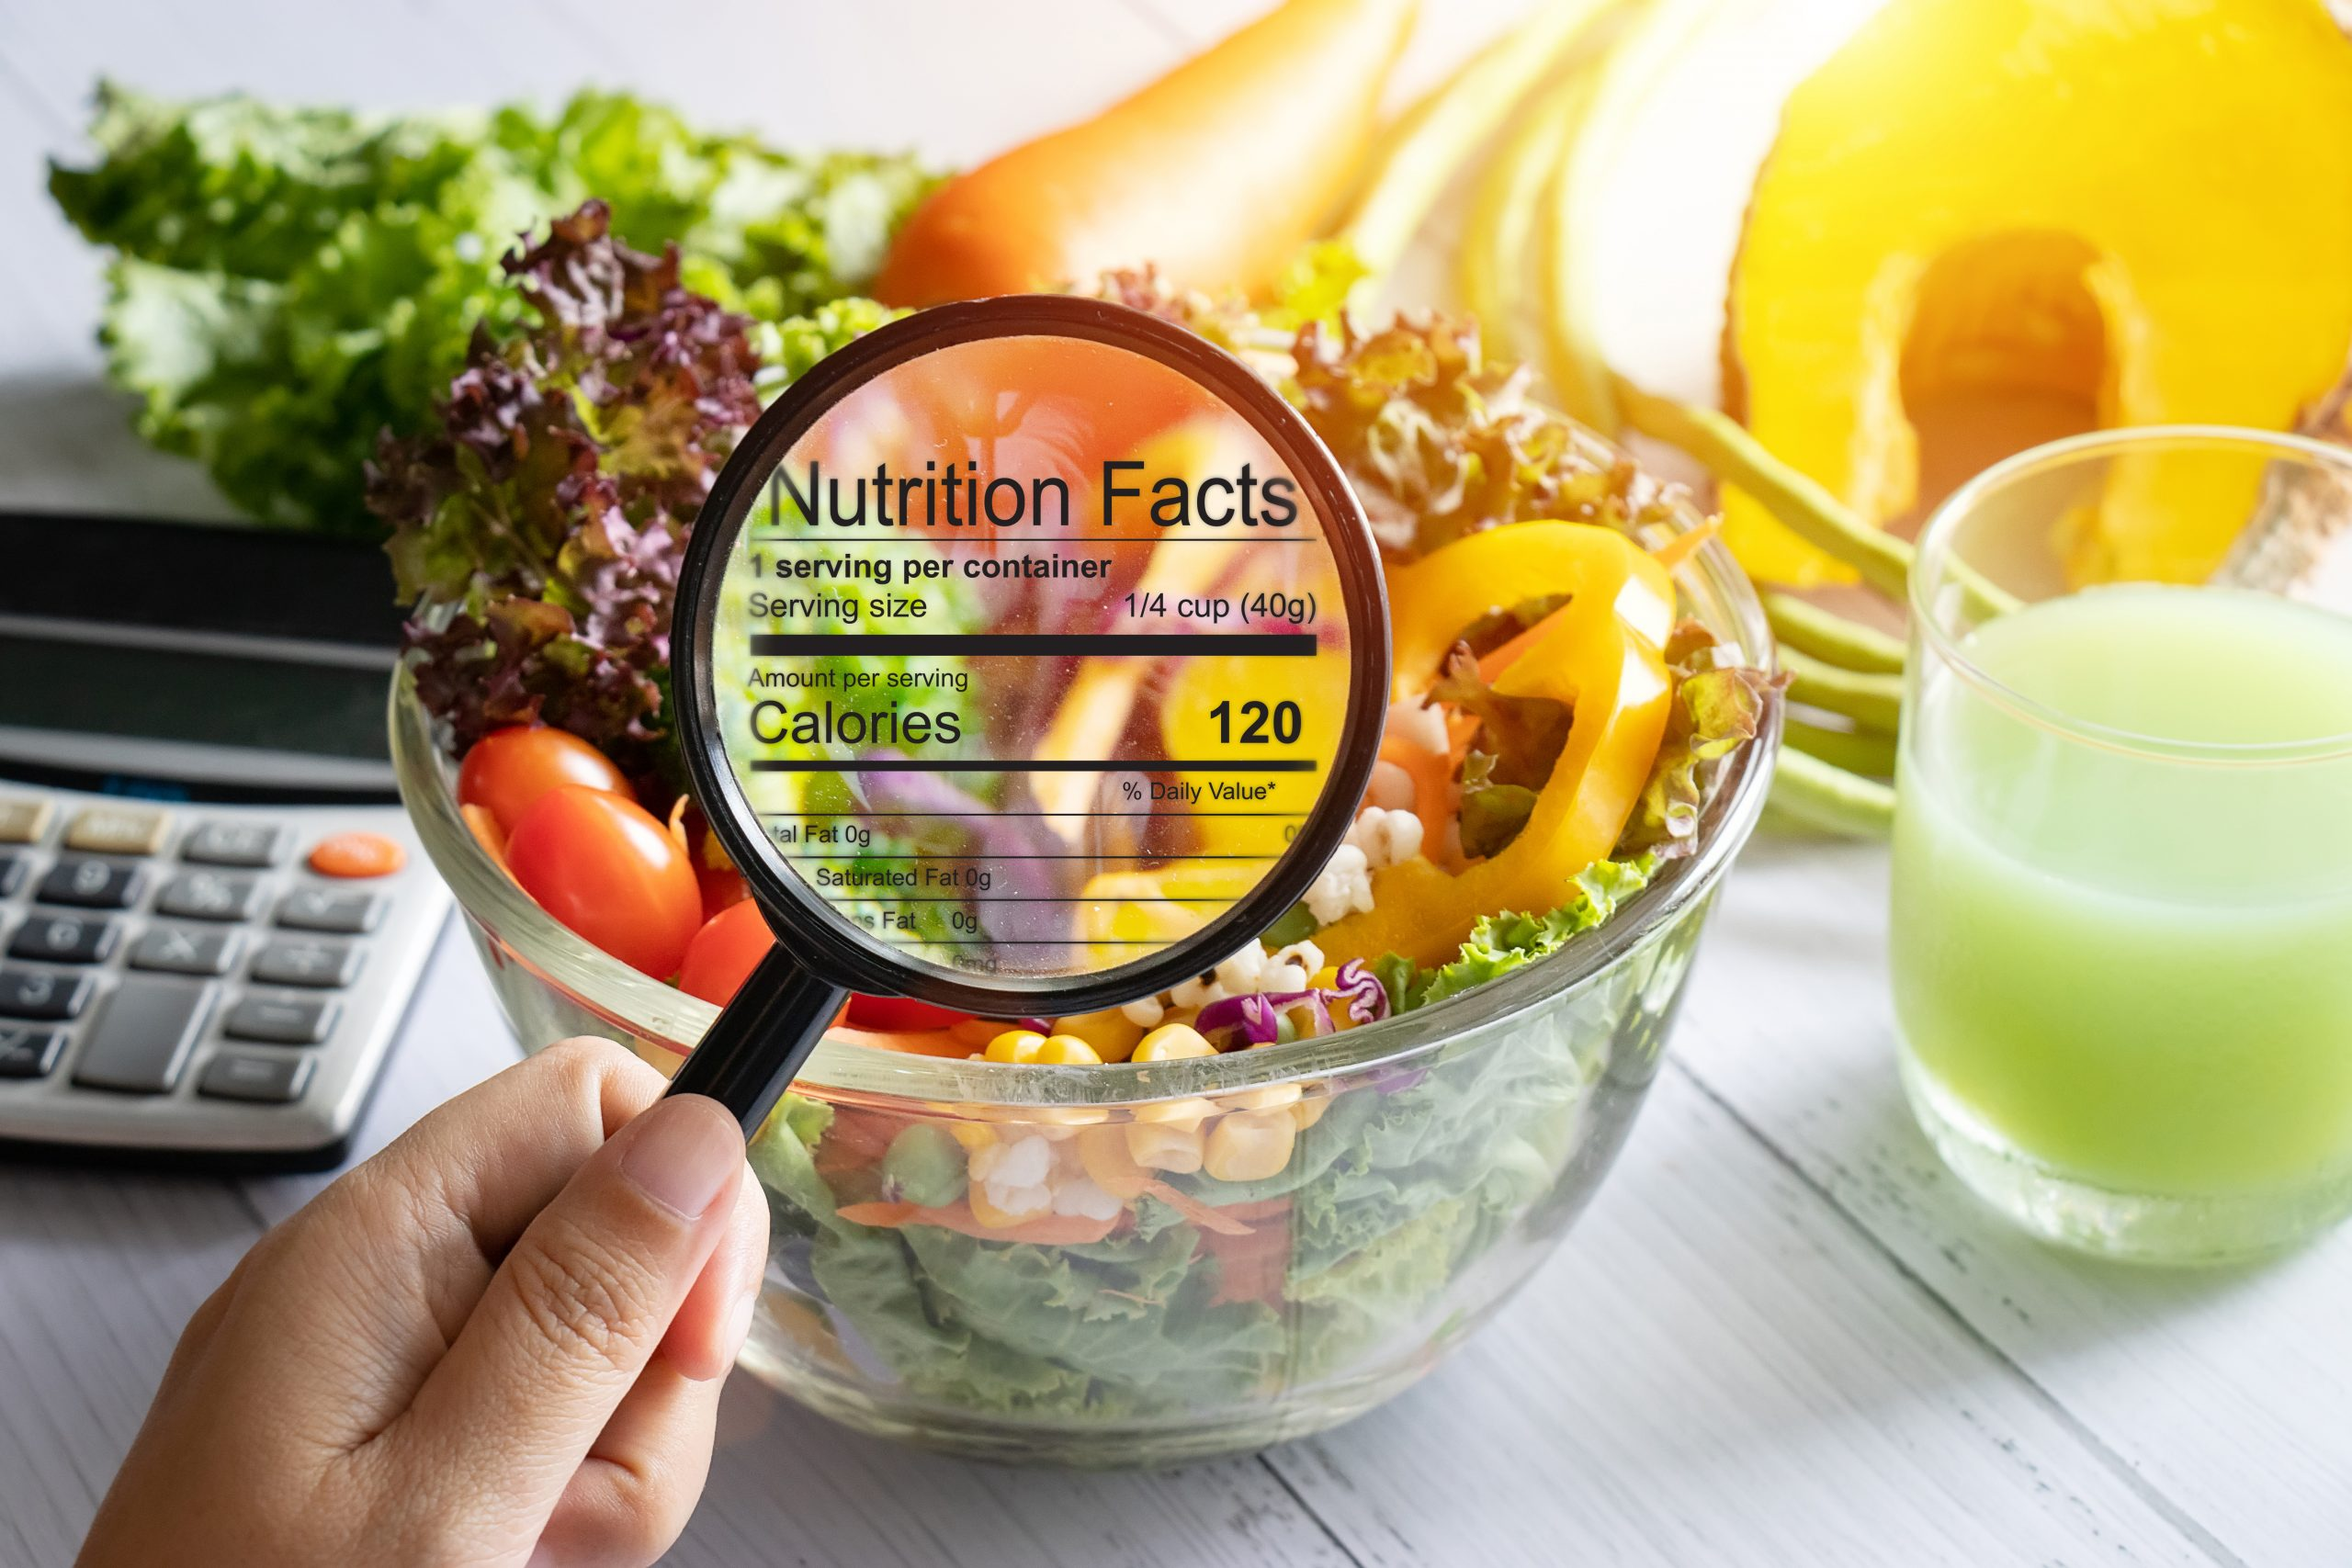 The Nutrition Facts Label: Breaking it down